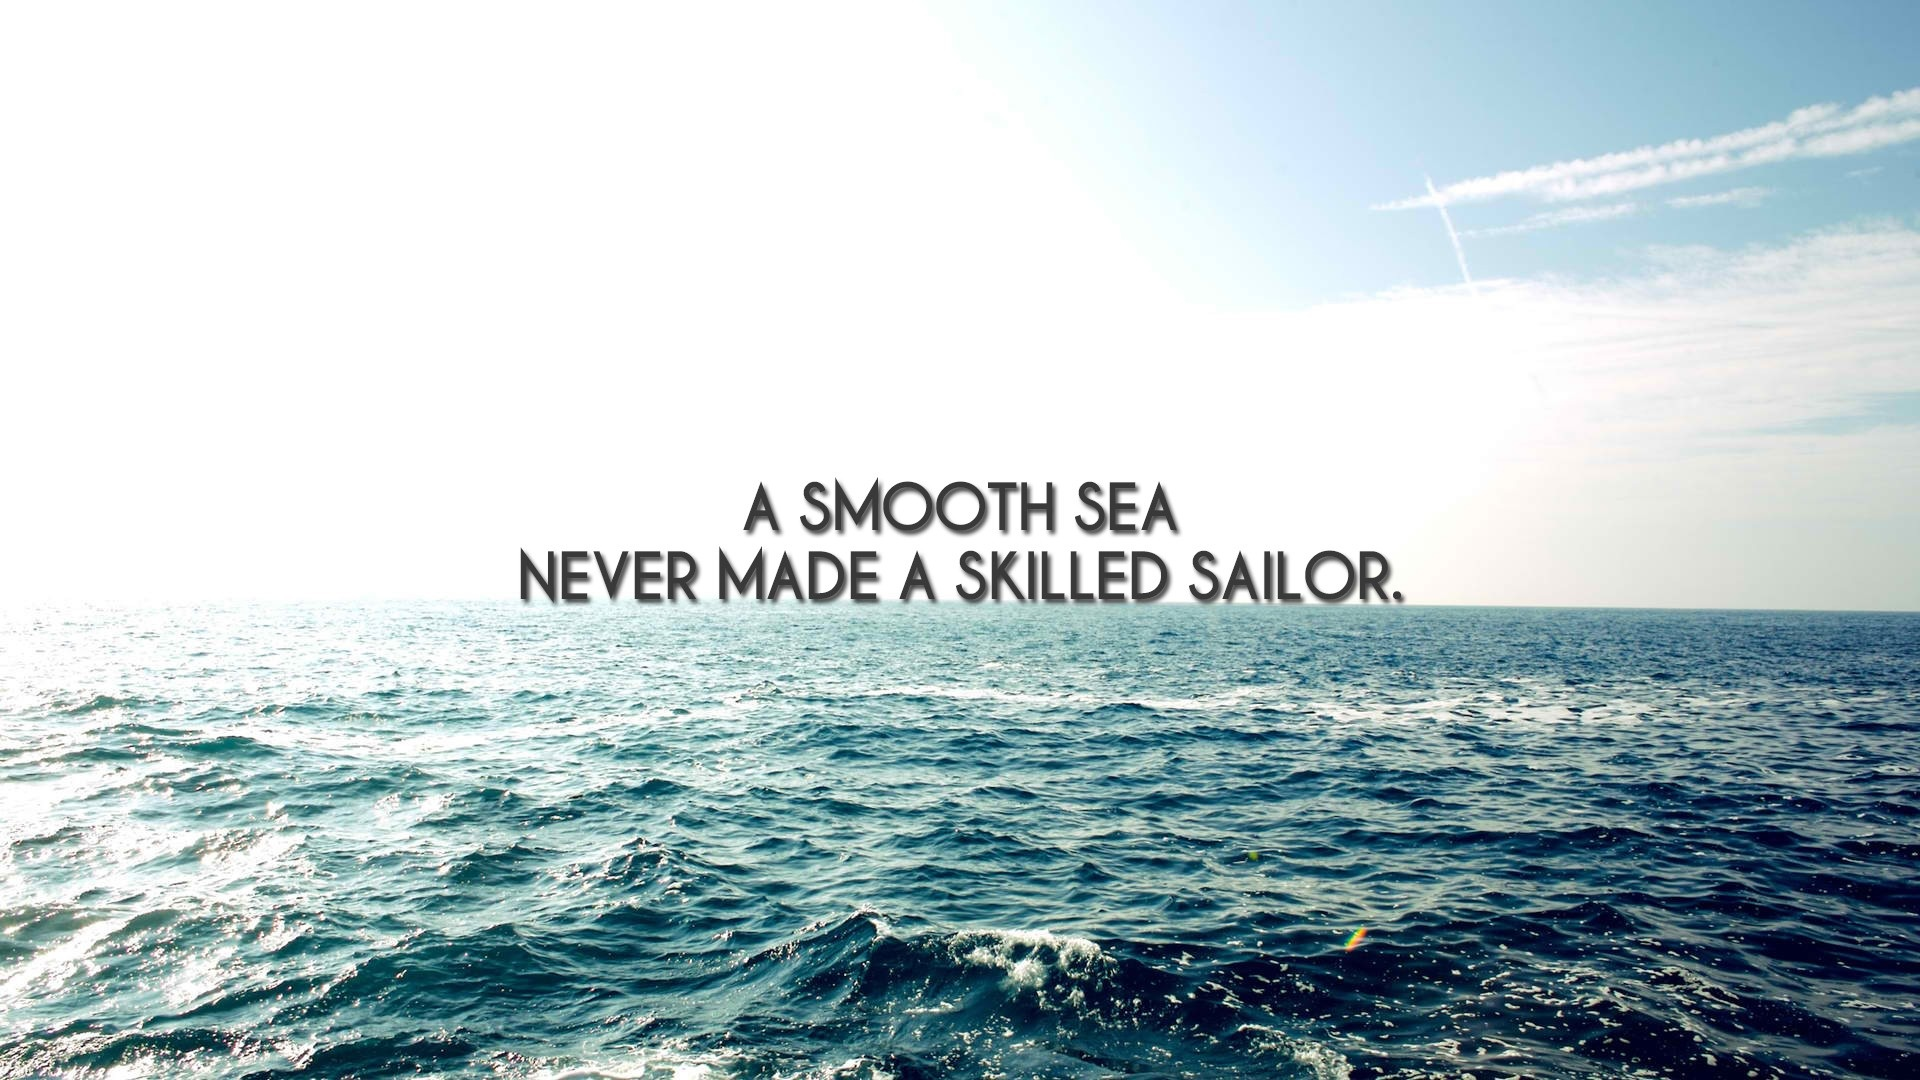 a smooth sea never made a skilled sailor wallpaper